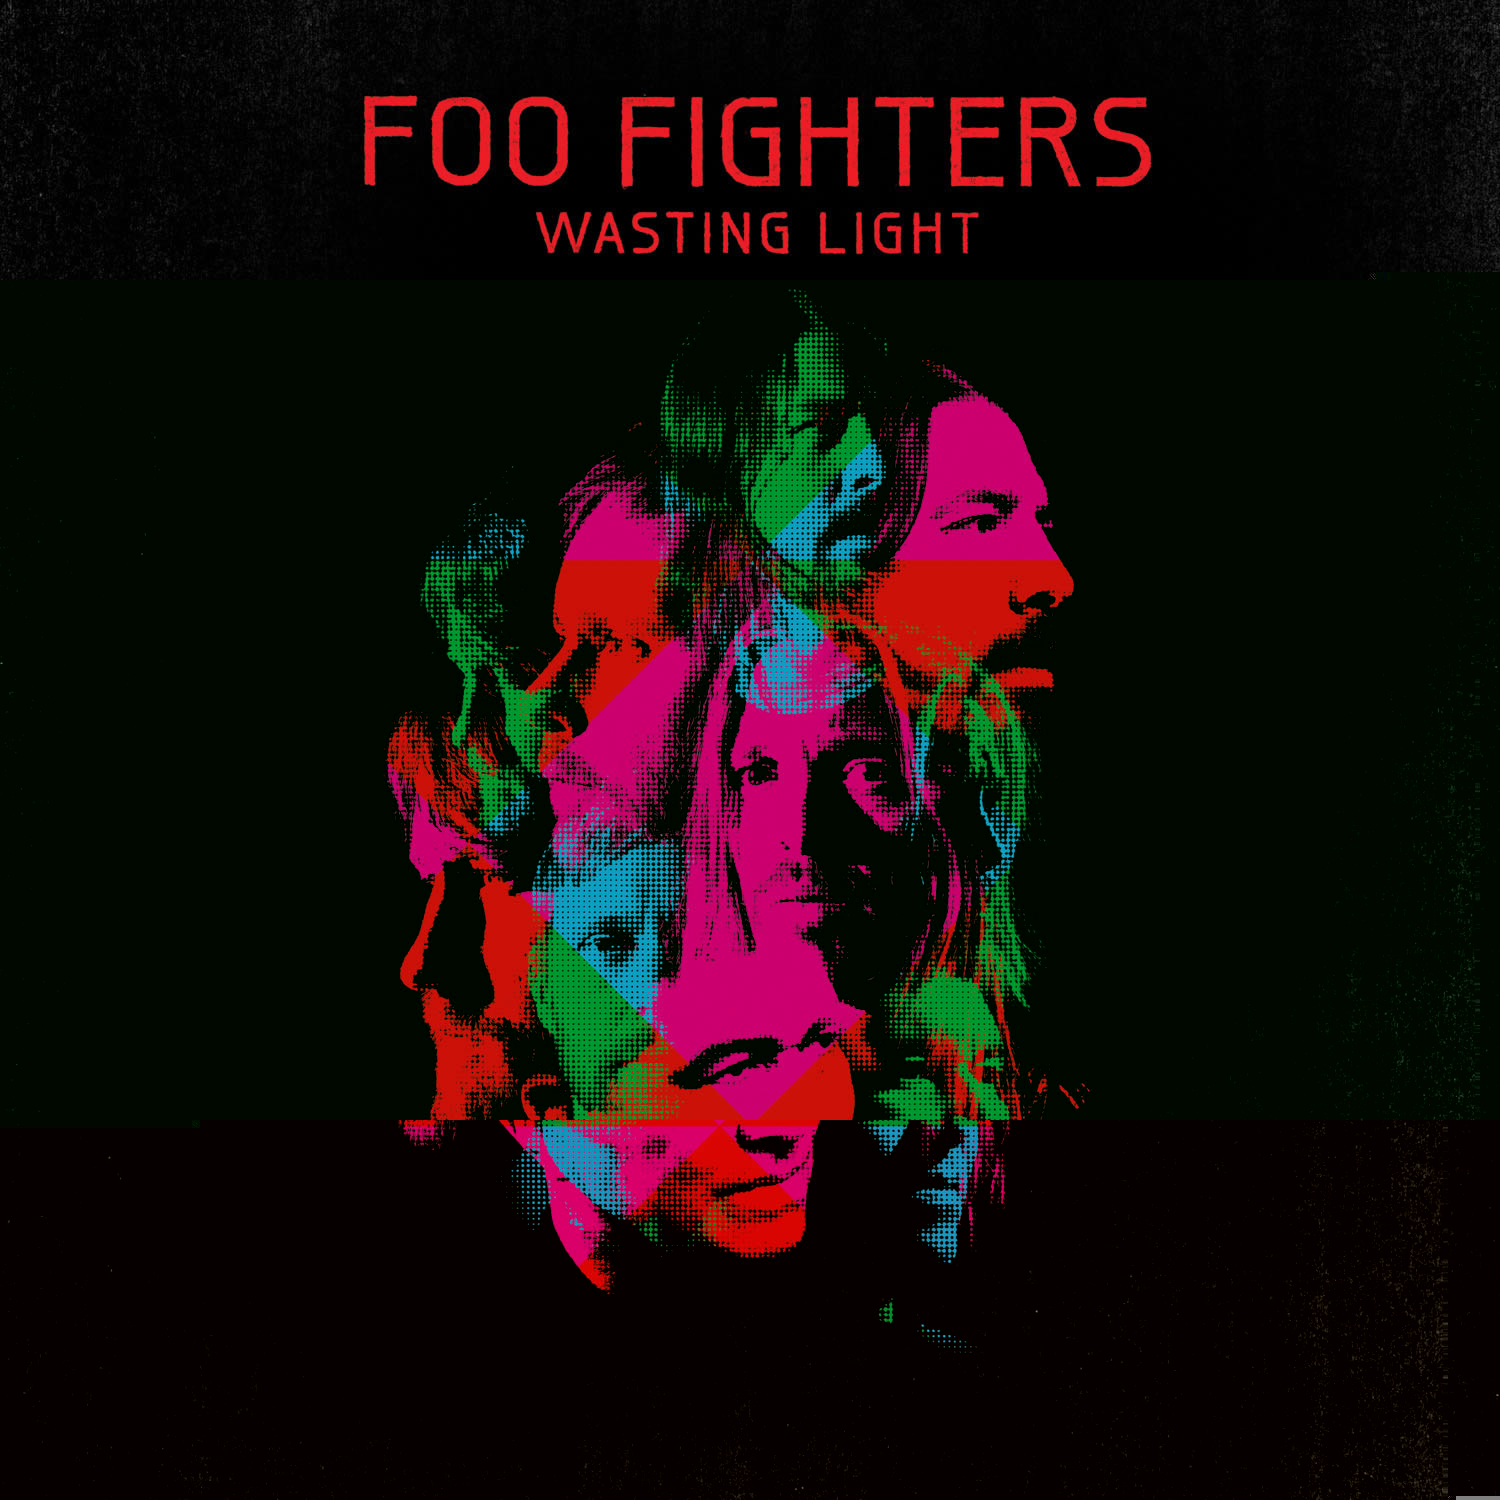 Wasting Light Foo Fighters And Lights On Pinterest